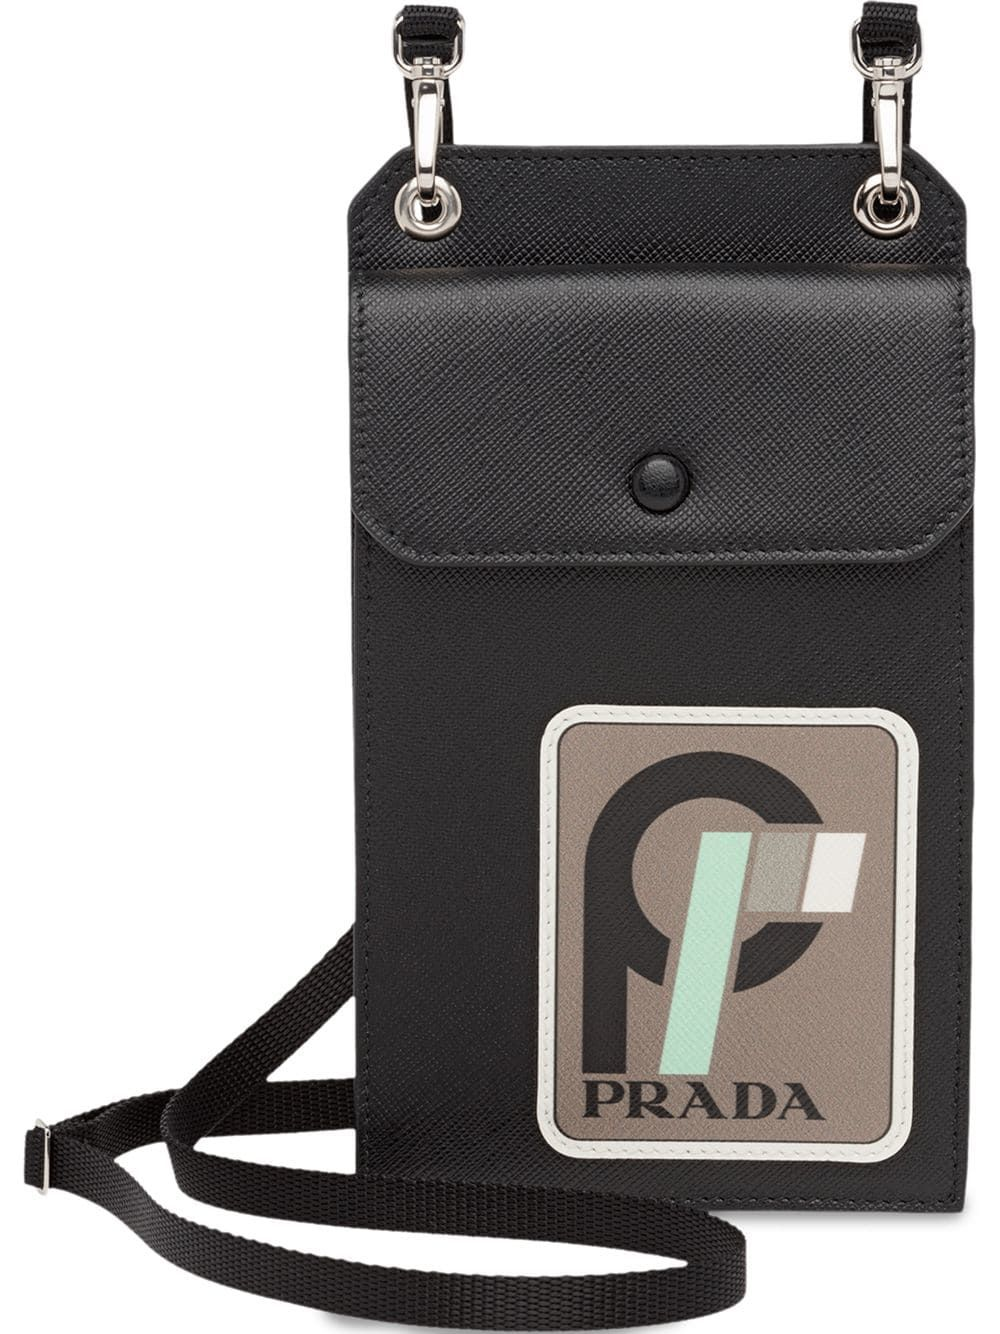 f9a2ed362250 PRADA PRADA SAFFIANO LEATHER CELLPHONE CASE - BLACK. #prada | Prada ...